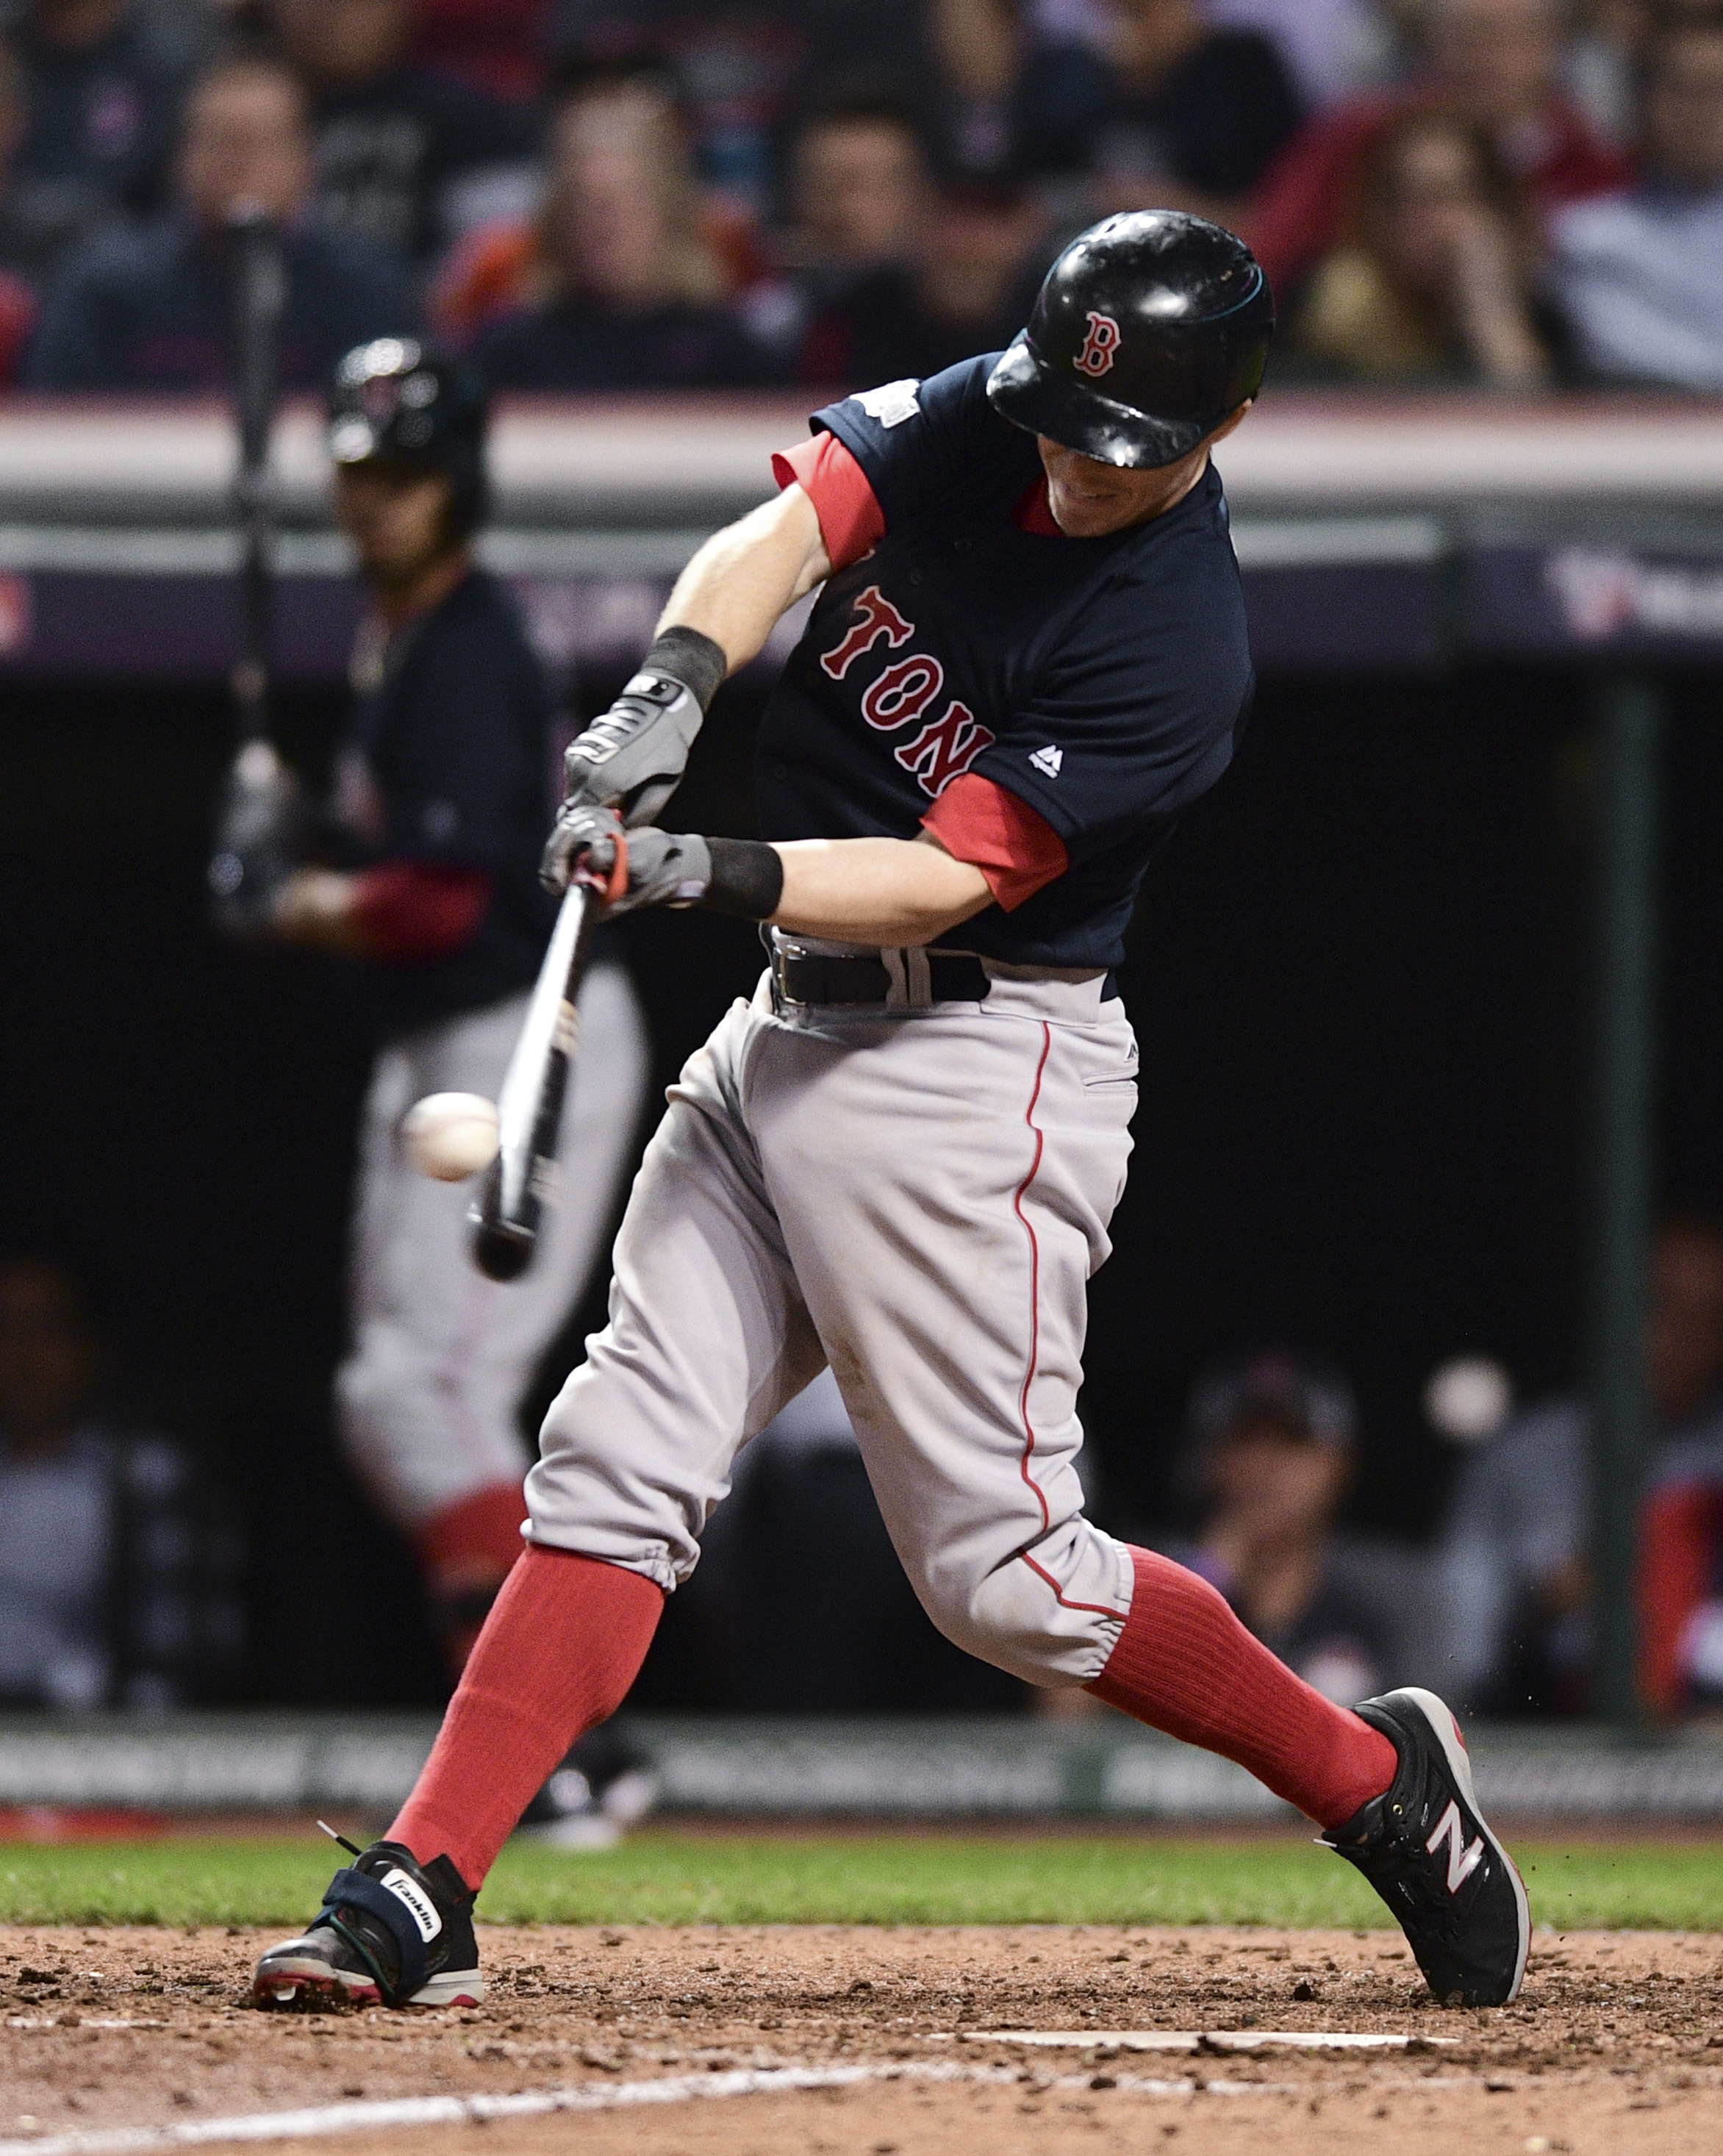 Boston Red Sox's Brock Holt hits a solo home run against the Cleveland Indians in the eighth inning during Game 1 of baseball's American League Division Series, Thursday, Oct. 6, 2016, in Cleveland. (AP Photo/David Dermer)